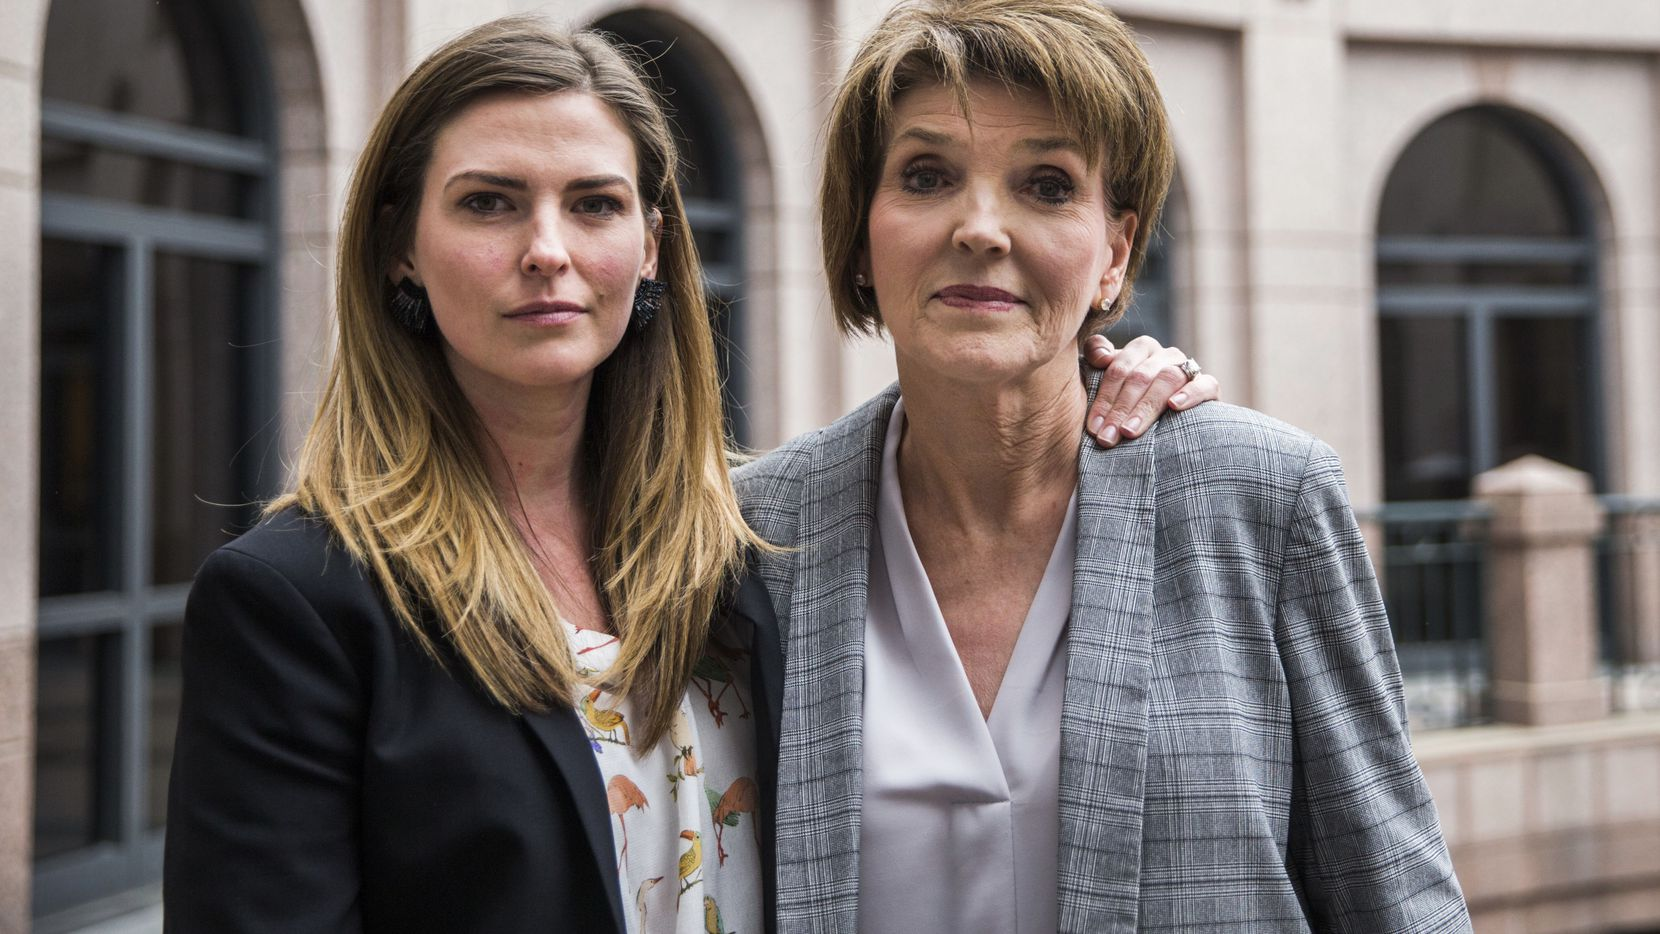 Eve Wiley (left) and her mother, Margo Williams, testified  before the Senate Criminal Justice Committee on Wednesday ,at the Texas  Capitol extension in Austin. Wiley was conceived through artificial insemination. Through genetic testing in 2018, she discovered that the sperm donor her mother chose was not her father. Rather, she says the doctor who performed the artificial insemination procedure is her father. They and state Sen. Joan Huffman are trying to pass SB 1259, which would make it a state jail felony for a health care provider to implant human reproductive material from an unauthorized source without consent of the patient.